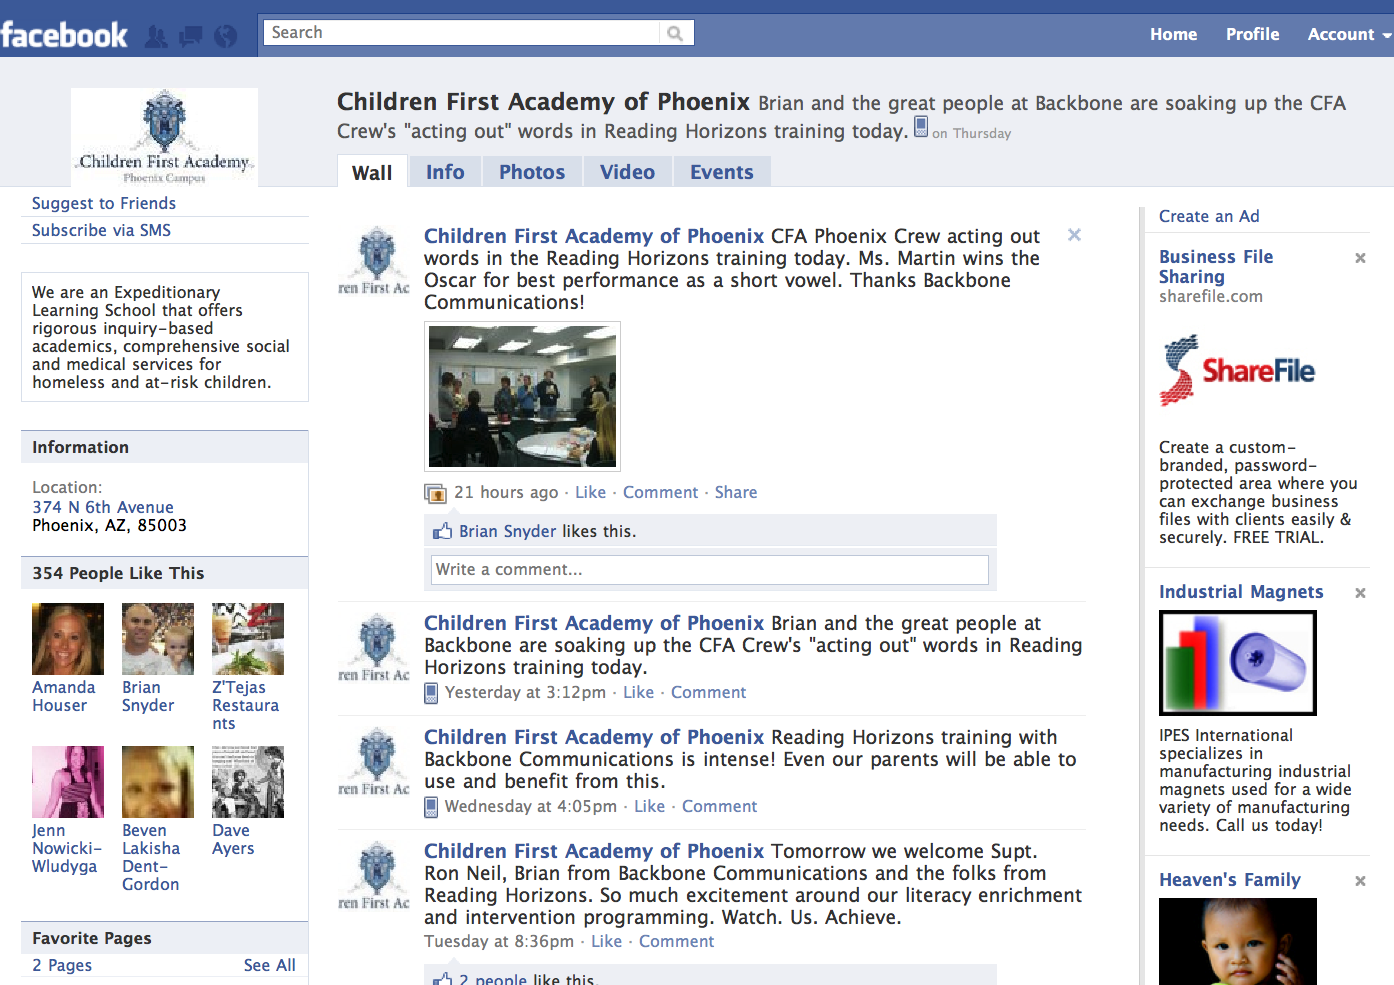 Children First Academy of Phoenix on Facebook